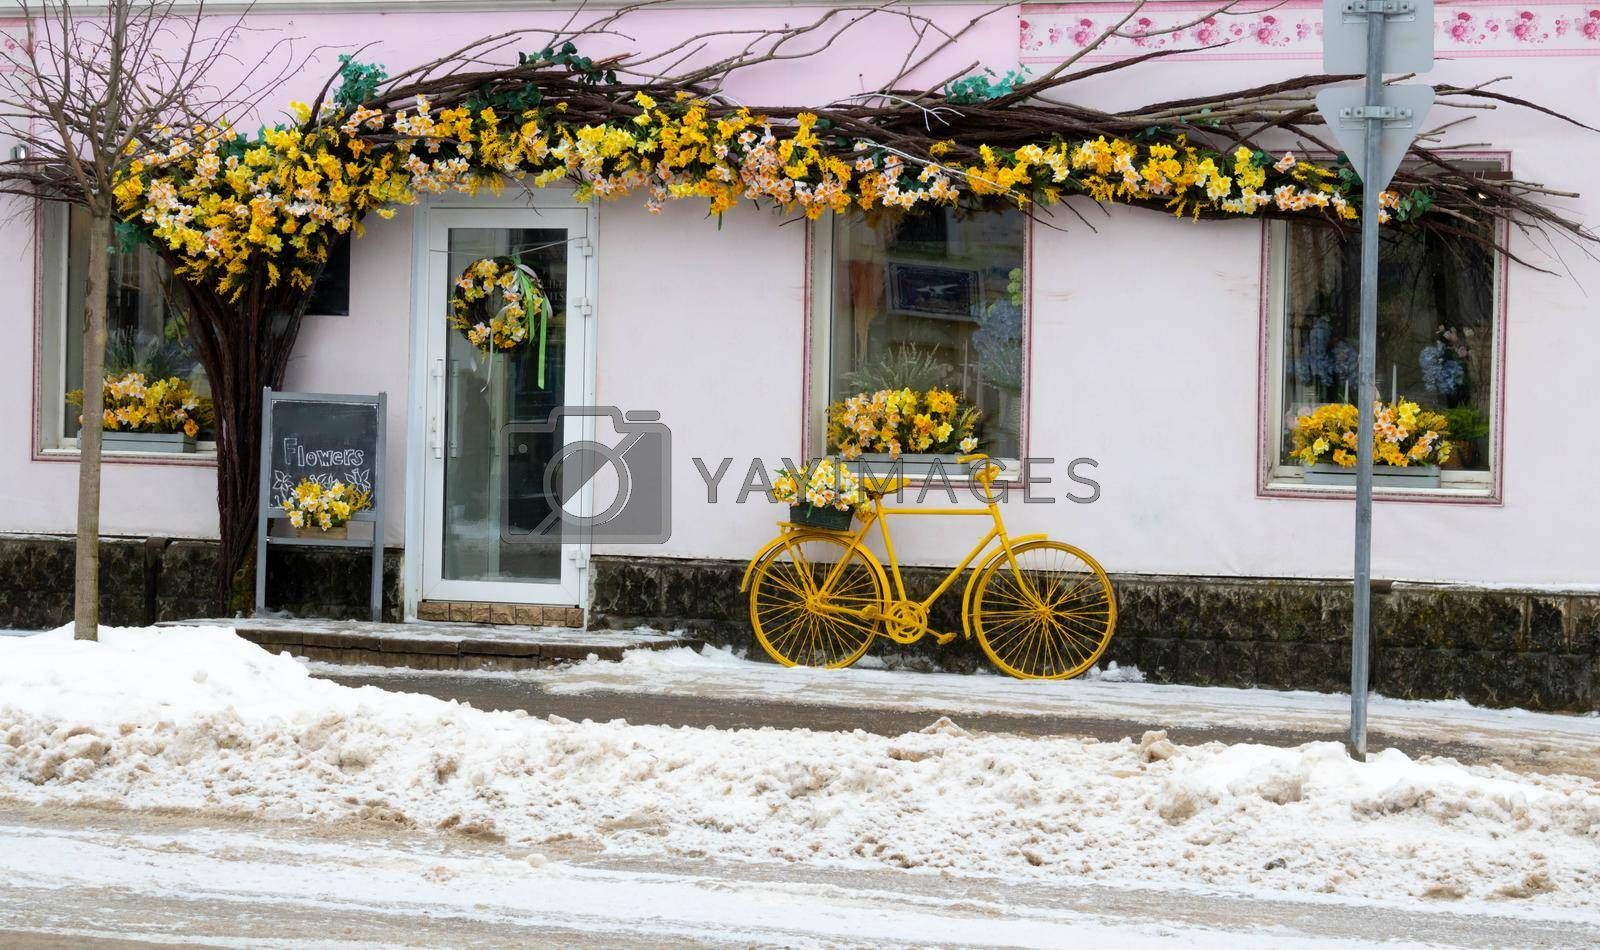 Vintage style flower shop, yellow bicycle with basket and daffodils.